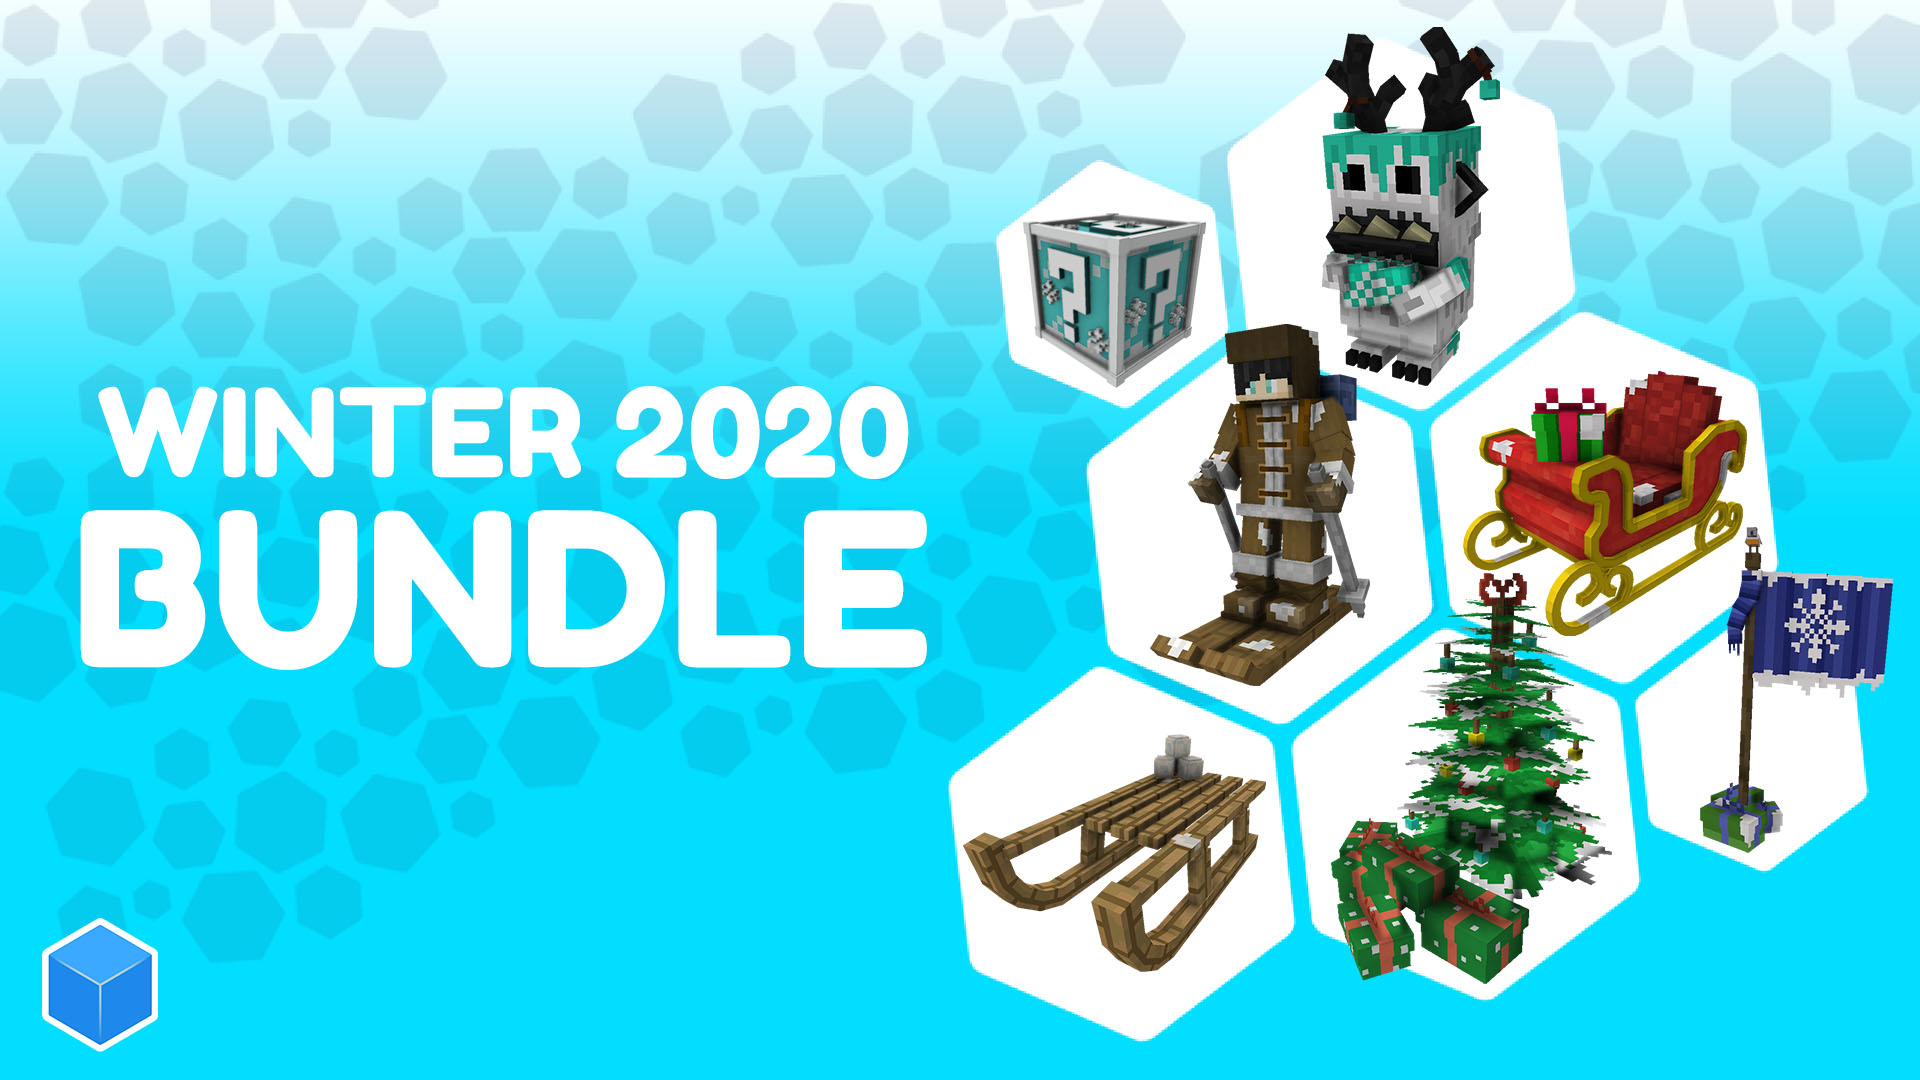 WinterBundle2020_MarketingKeyArt.jpg